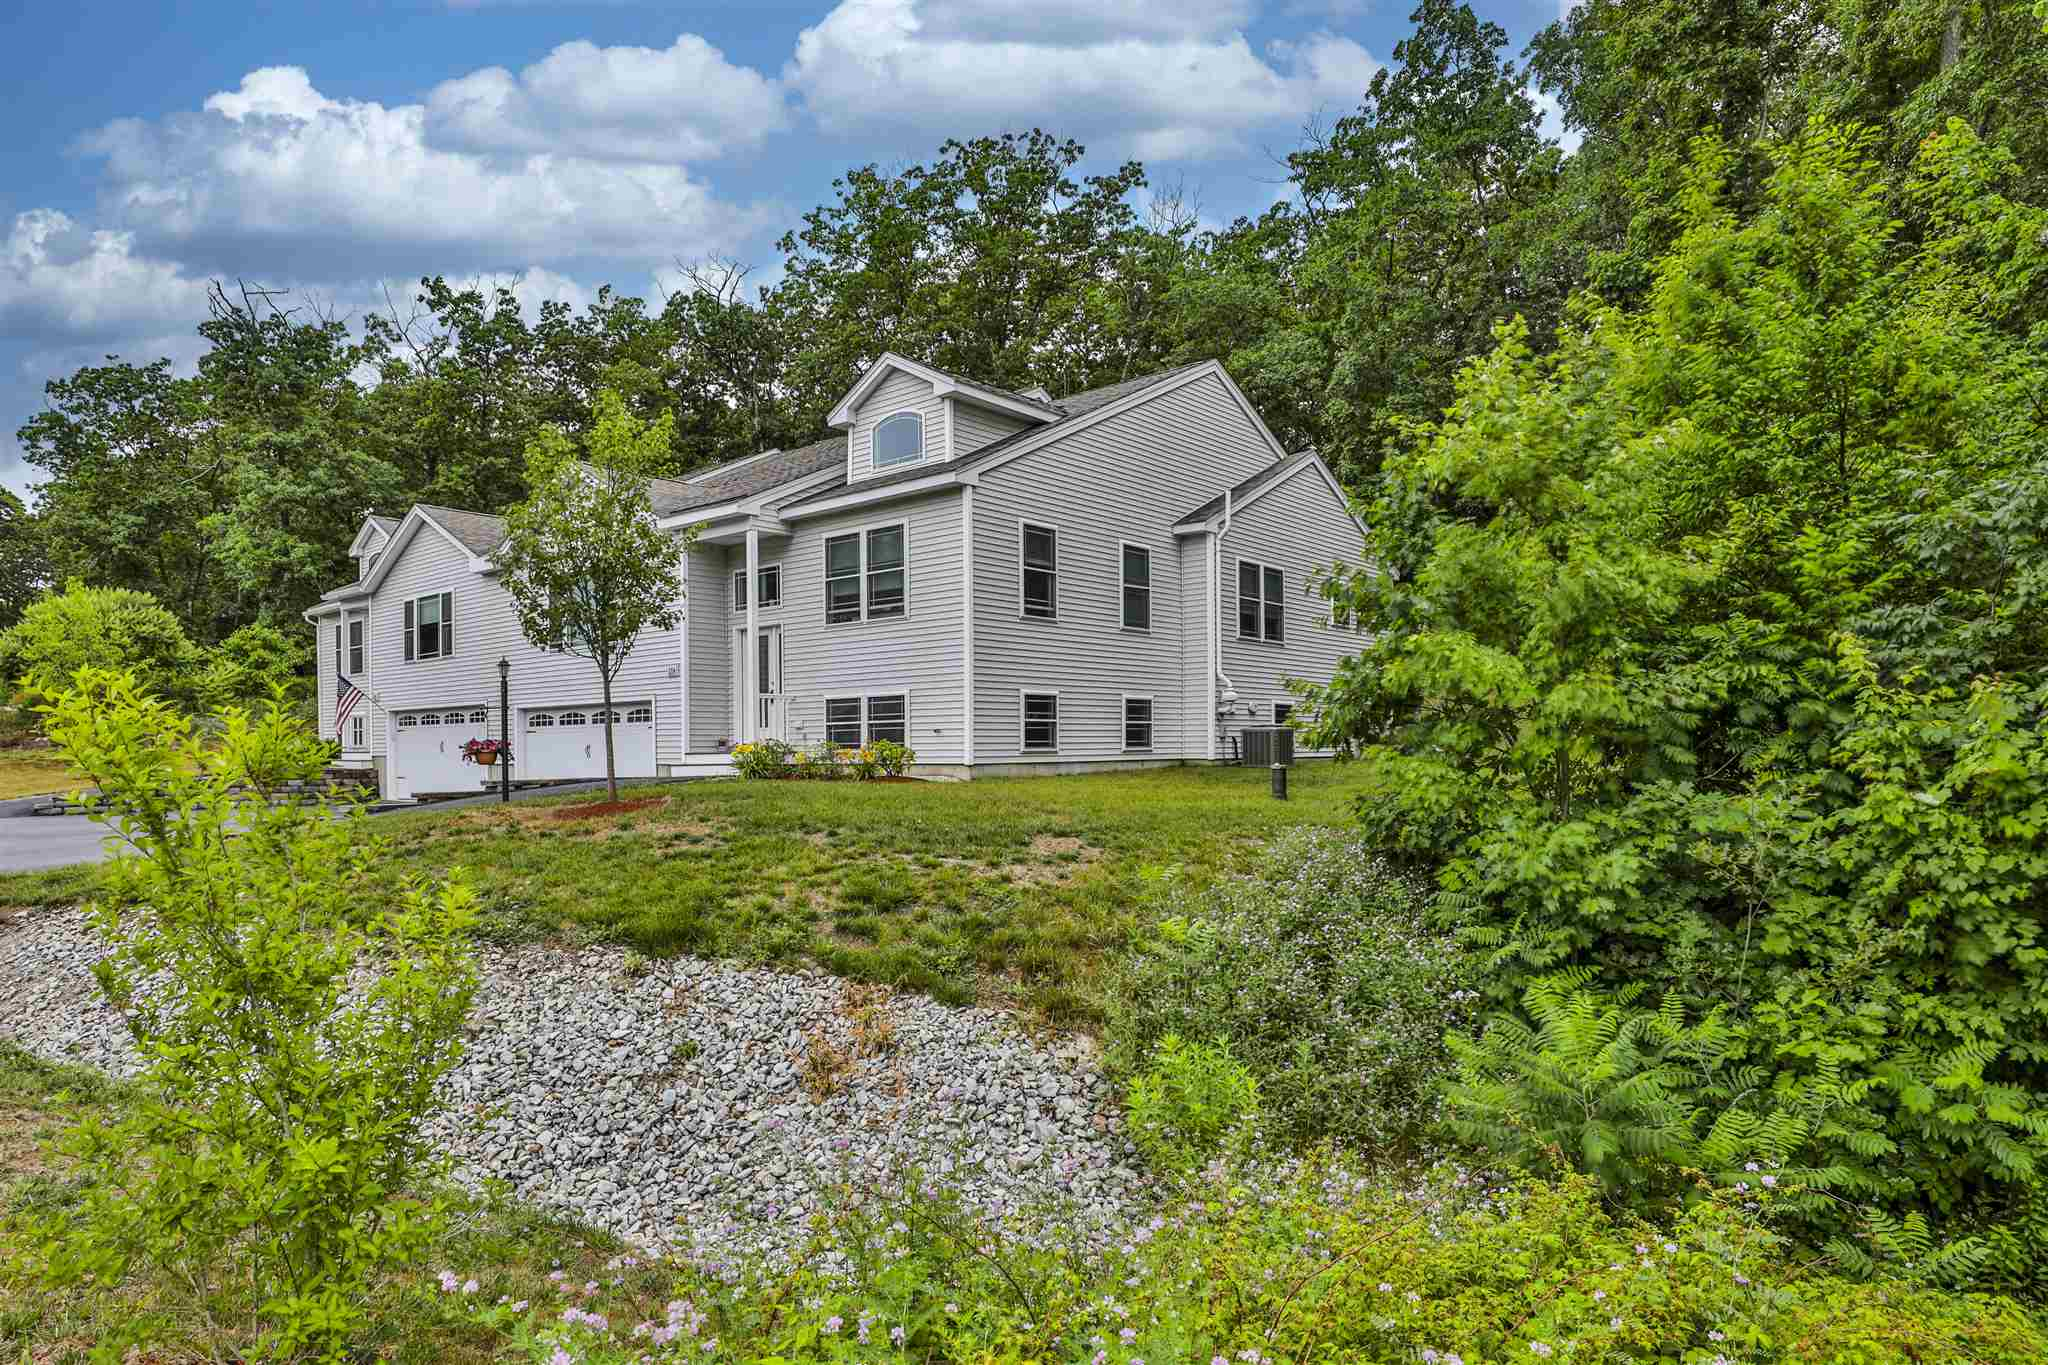 MLS 4815664: 11 Indian Hill Road-Unit R, Derry NH